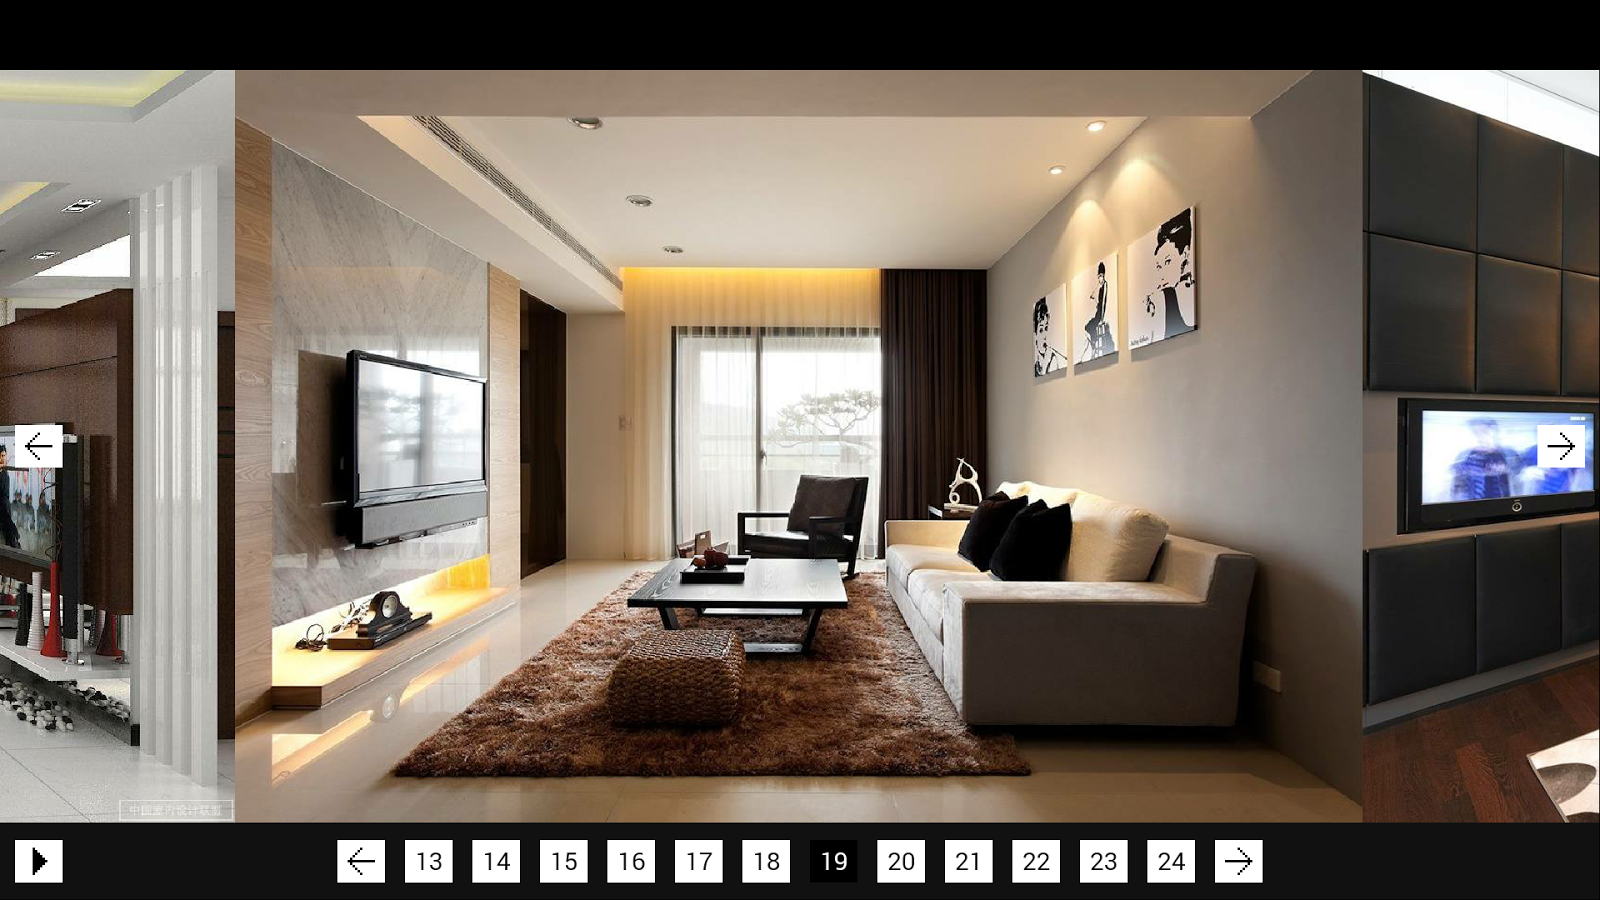 Home interior design android apps on google play Venetian interior design ideas for your home